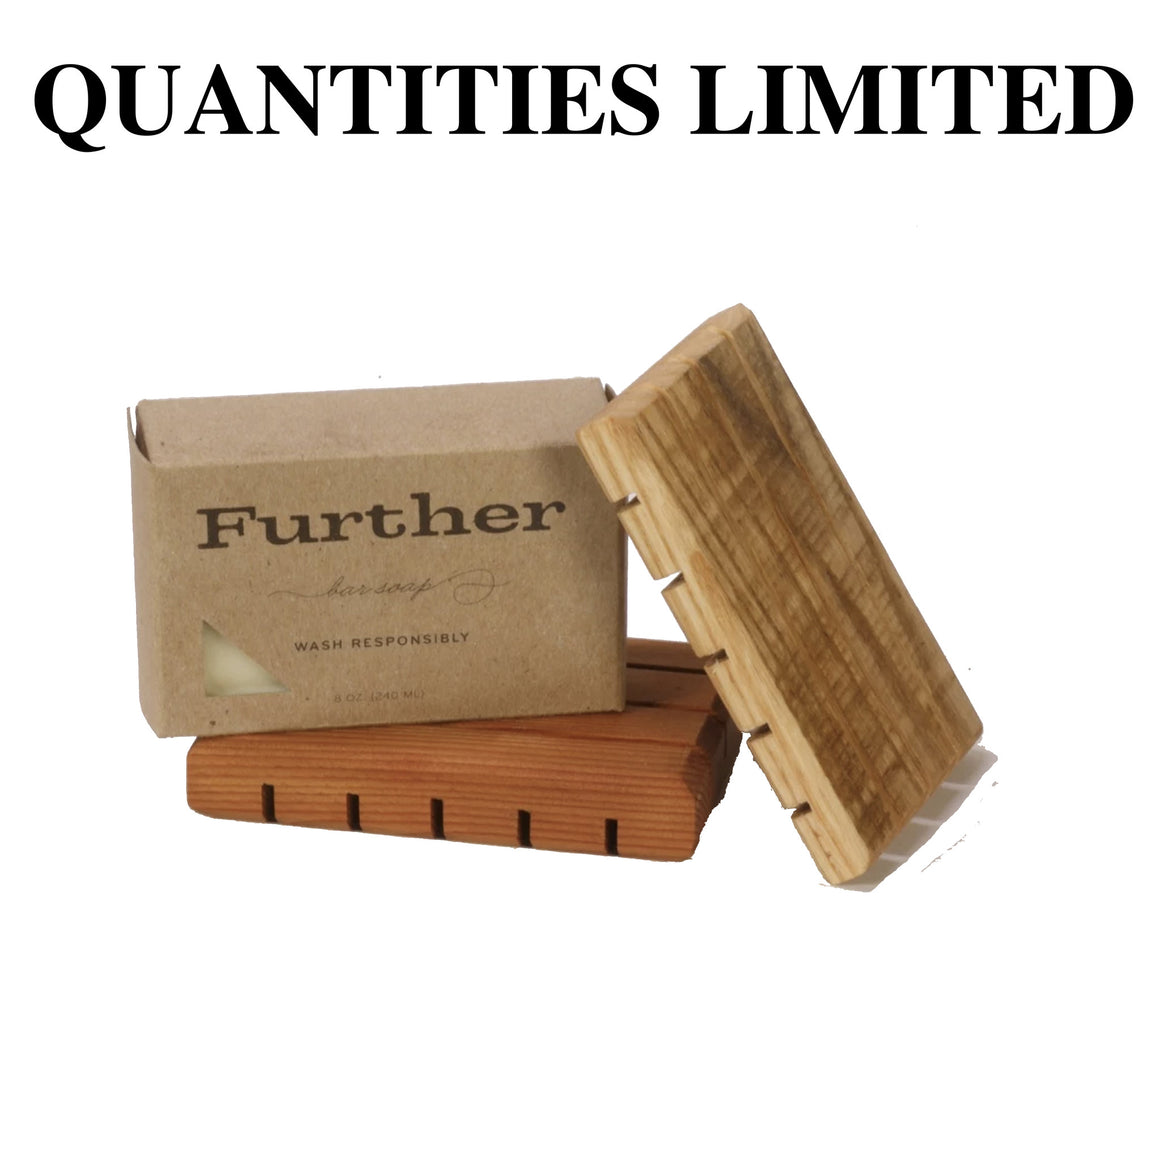 Further Bar Soap & Tray Gift Set